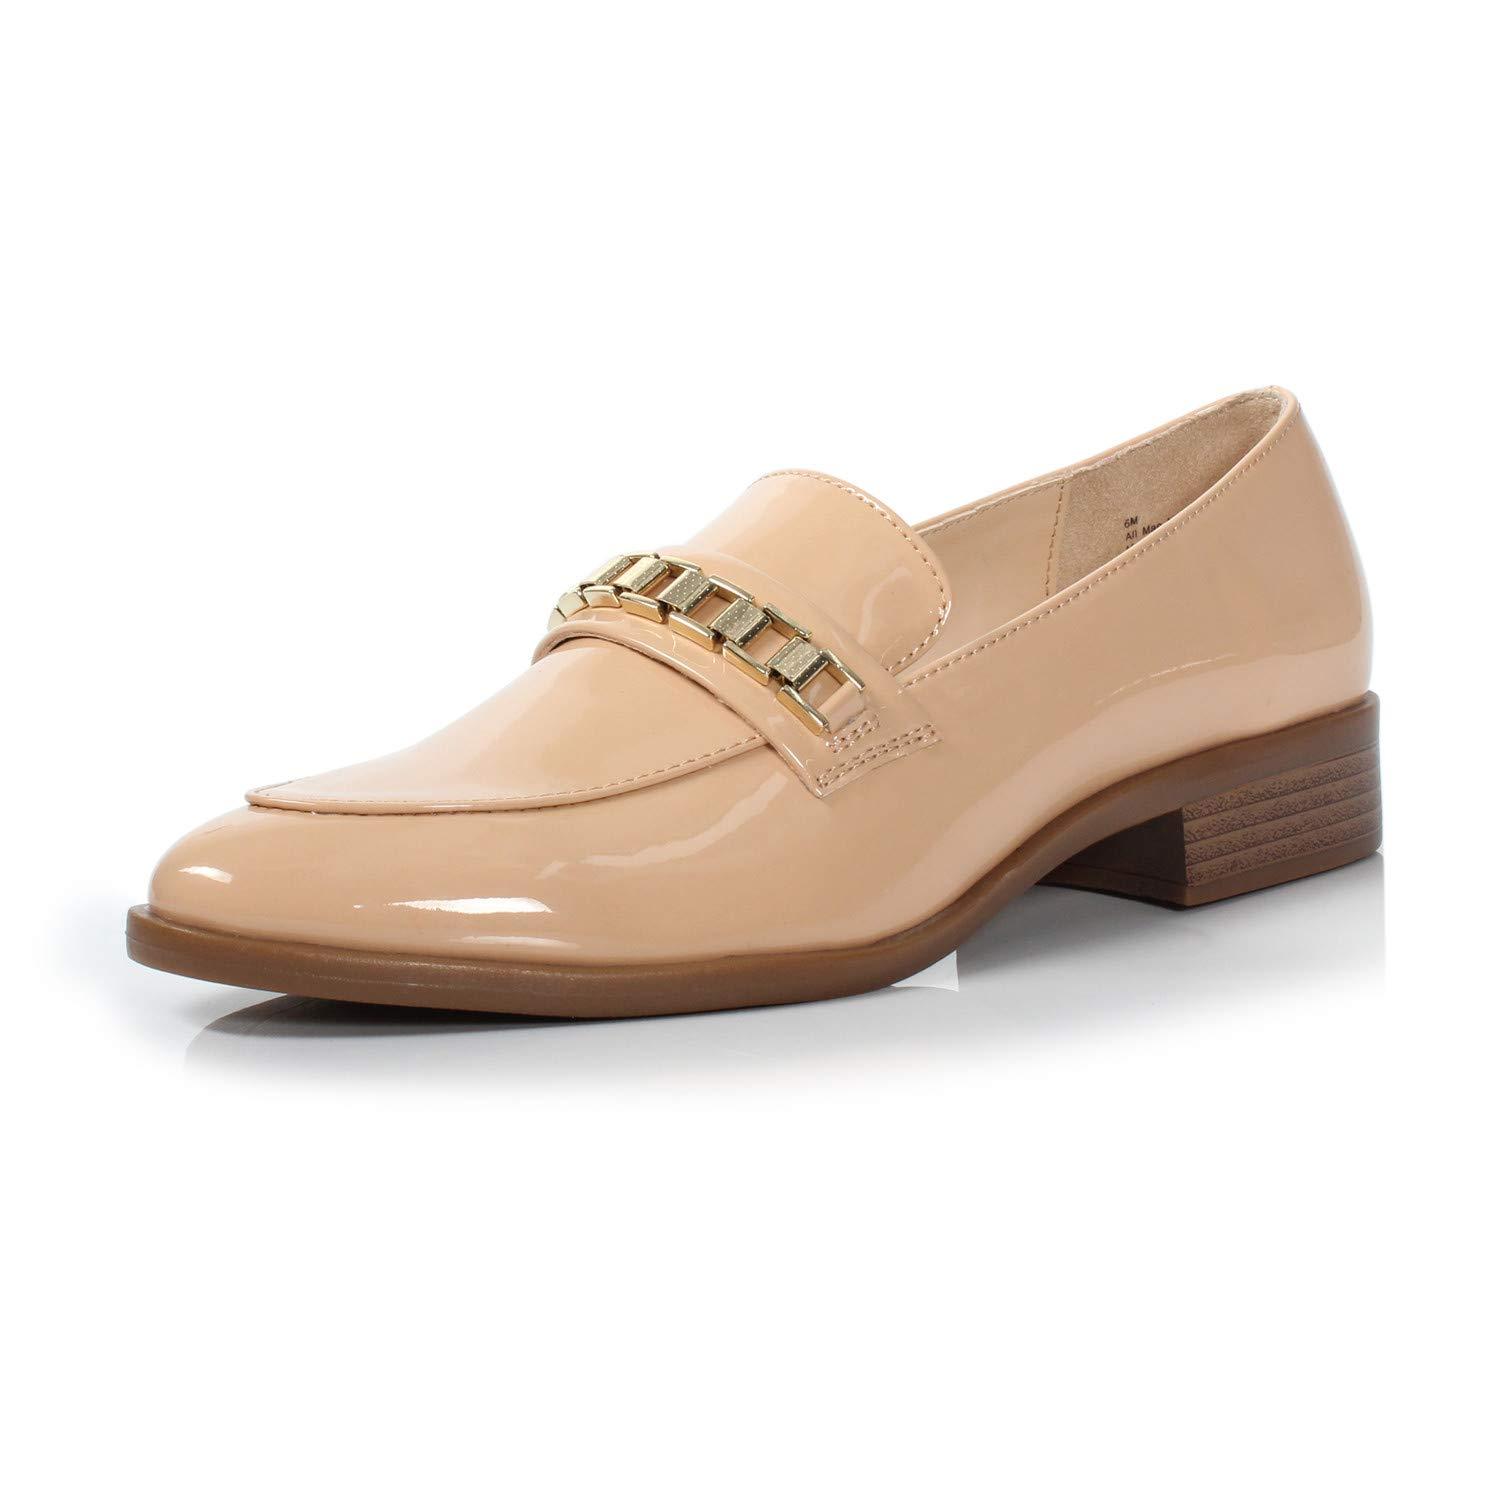 Brandon Dark Nude DUNION Women's Brandon Chain Decorated Penny Loafers Low Heels Almond Toe Casual Daily shoes